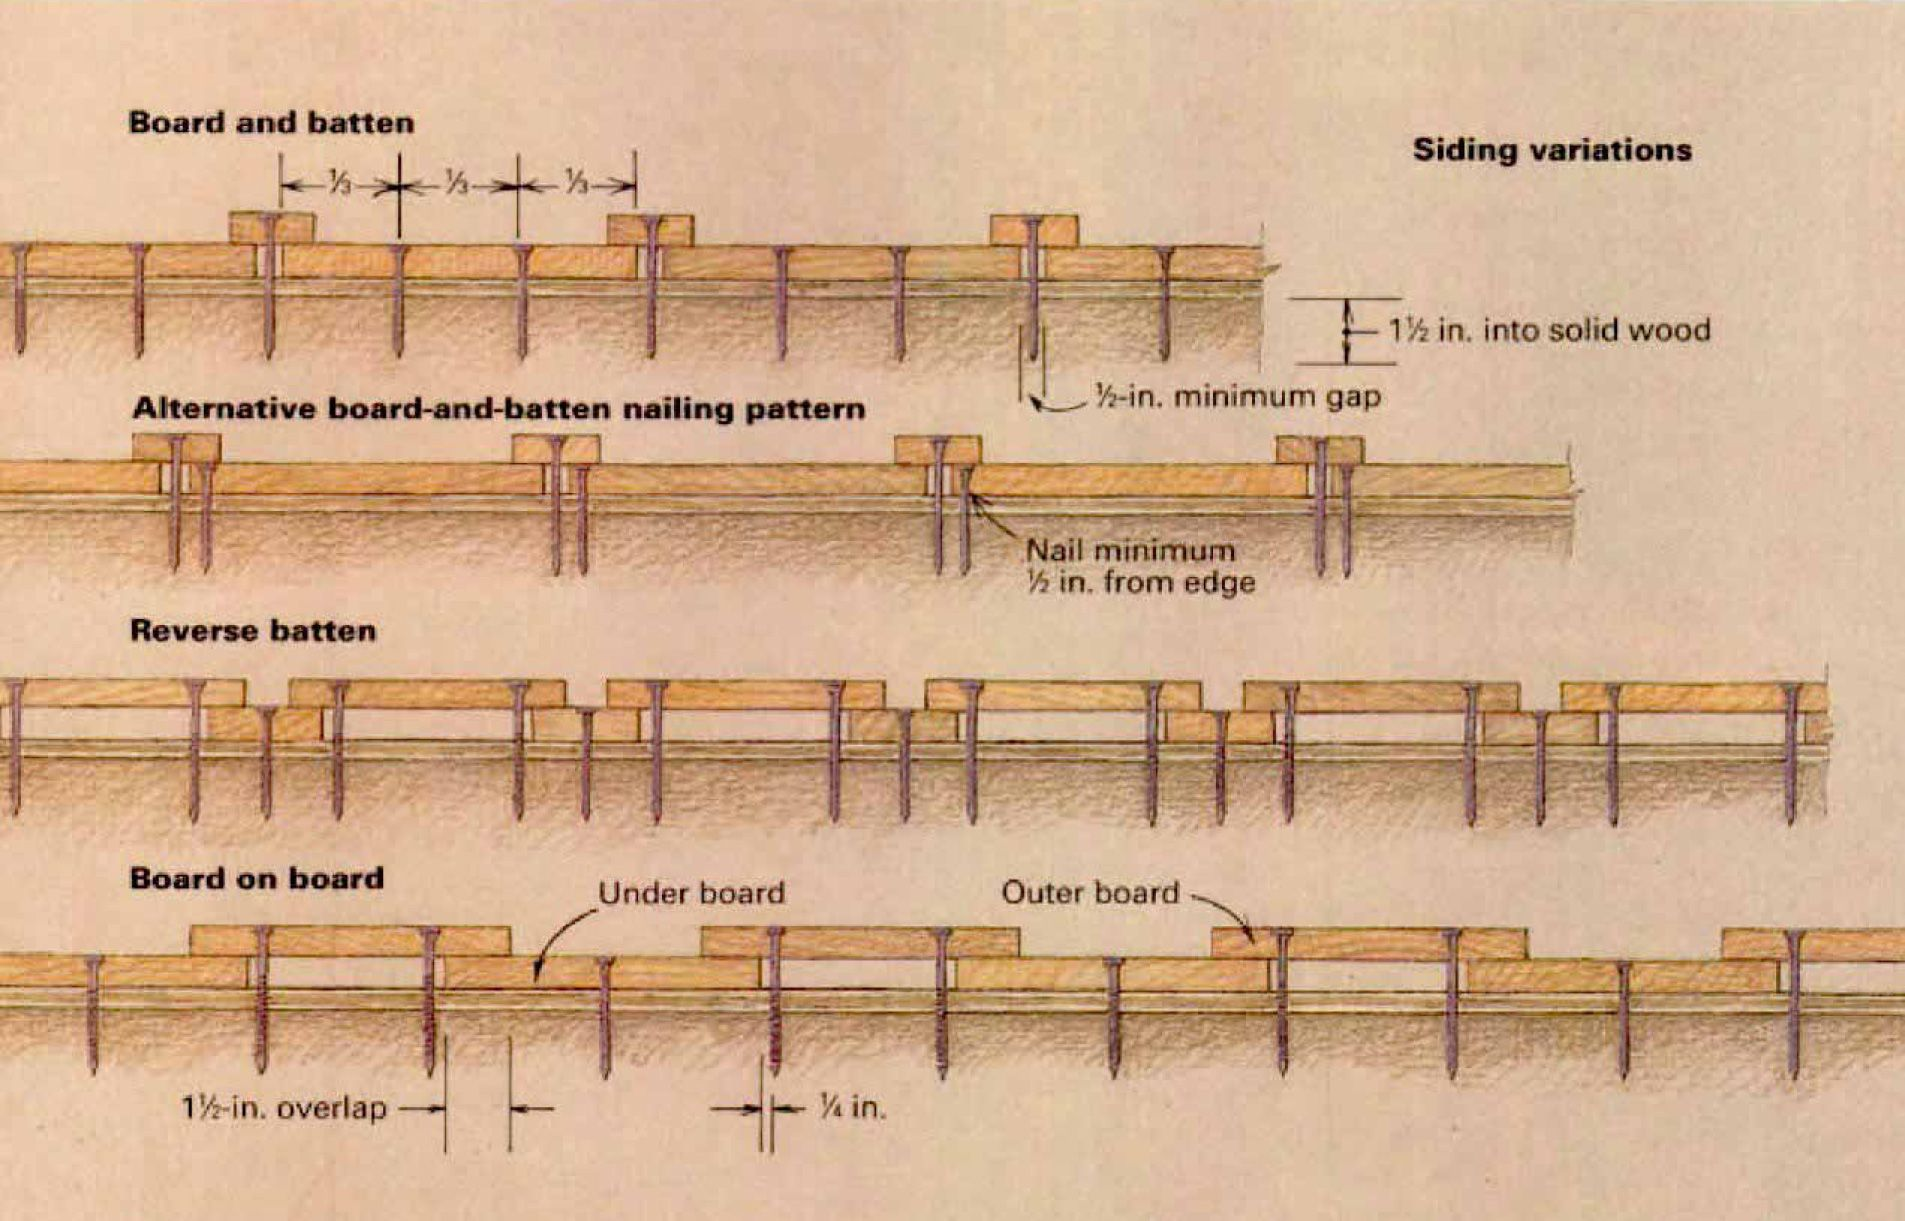 How To Install Board And Batten Siding Fine Homebuilding Board And Batten Siding Board And Batten Exterior House Siding